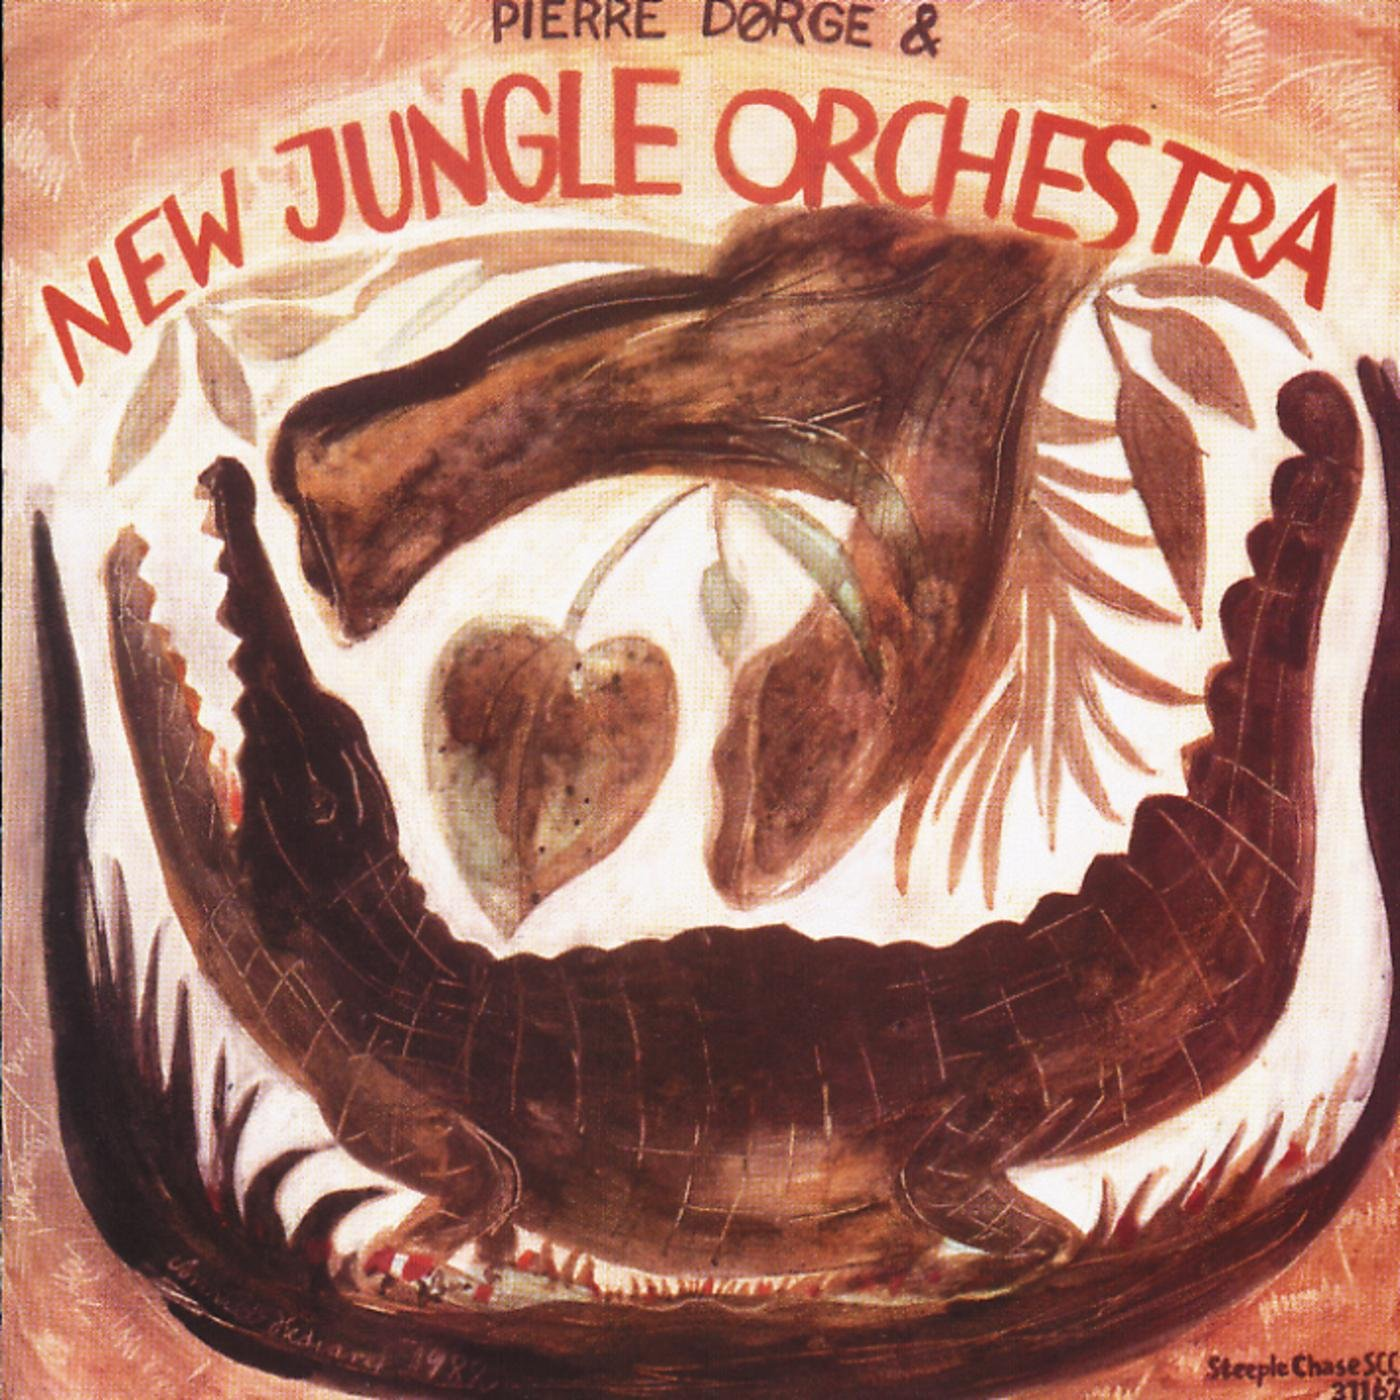 Sale Outlet ☆ Free Shipping Special Price Pierre Dorge's New Jungle Orchestra